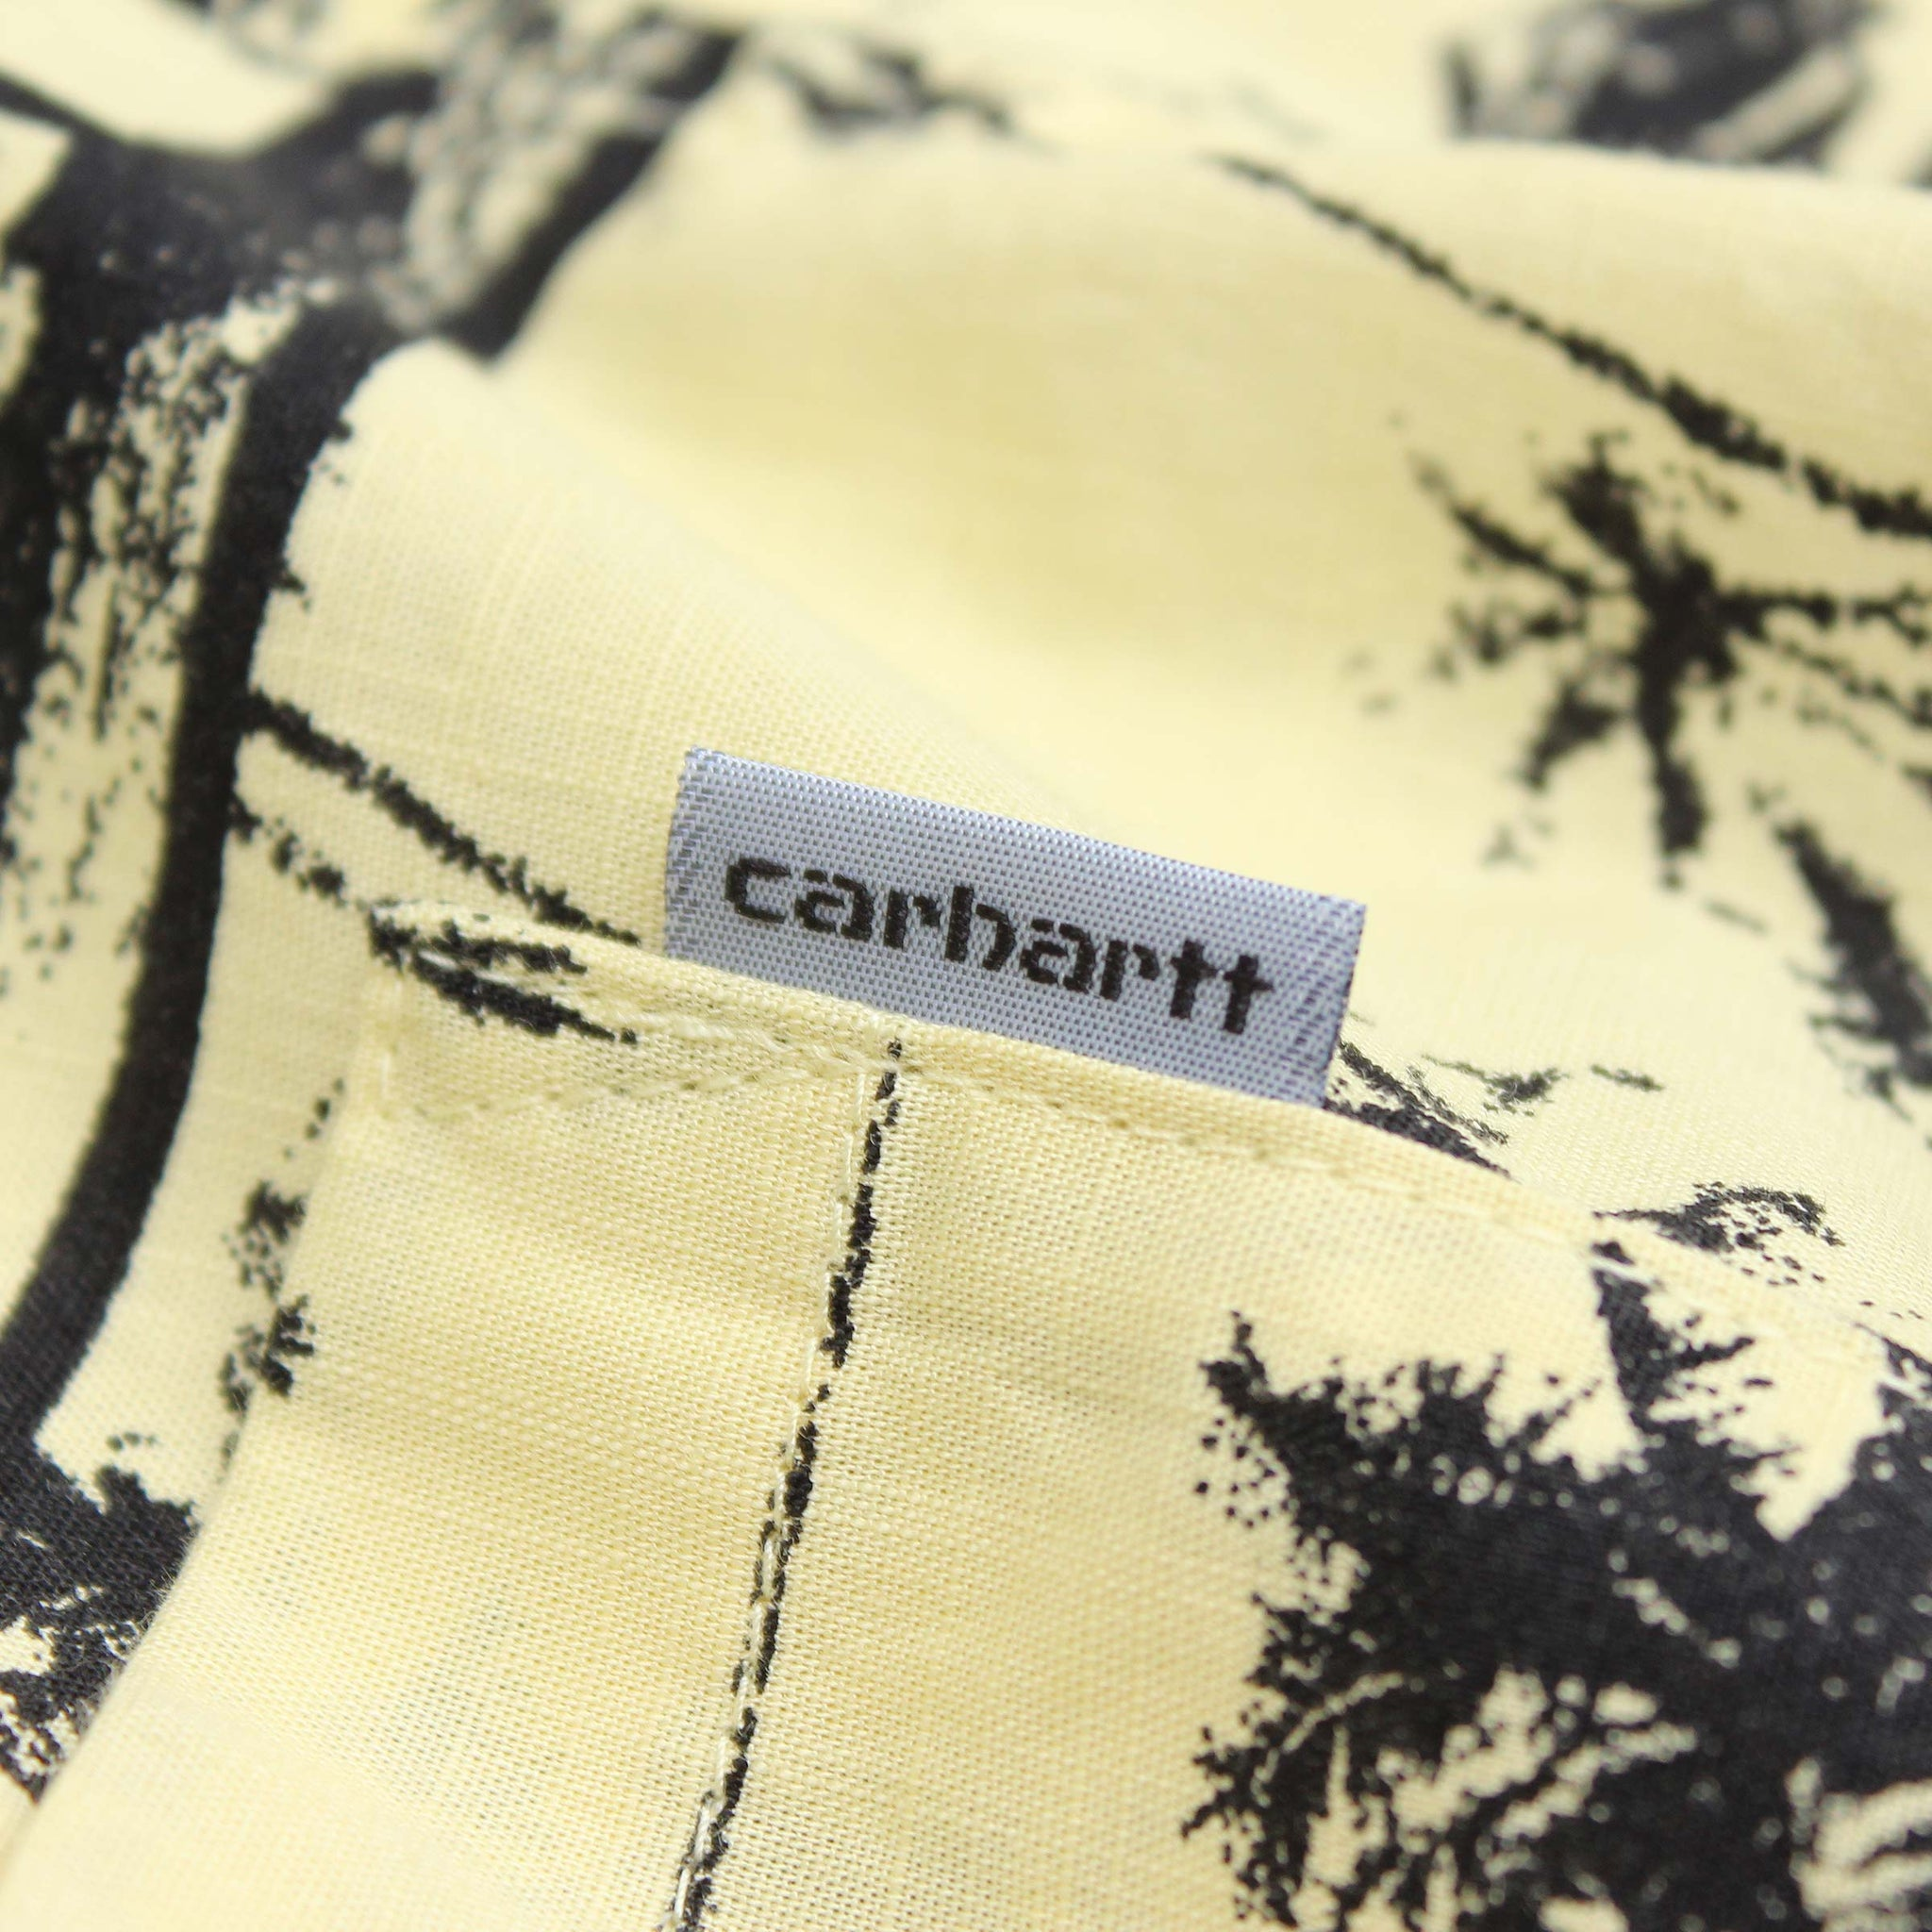 Carhartt WIP Safari Shirt